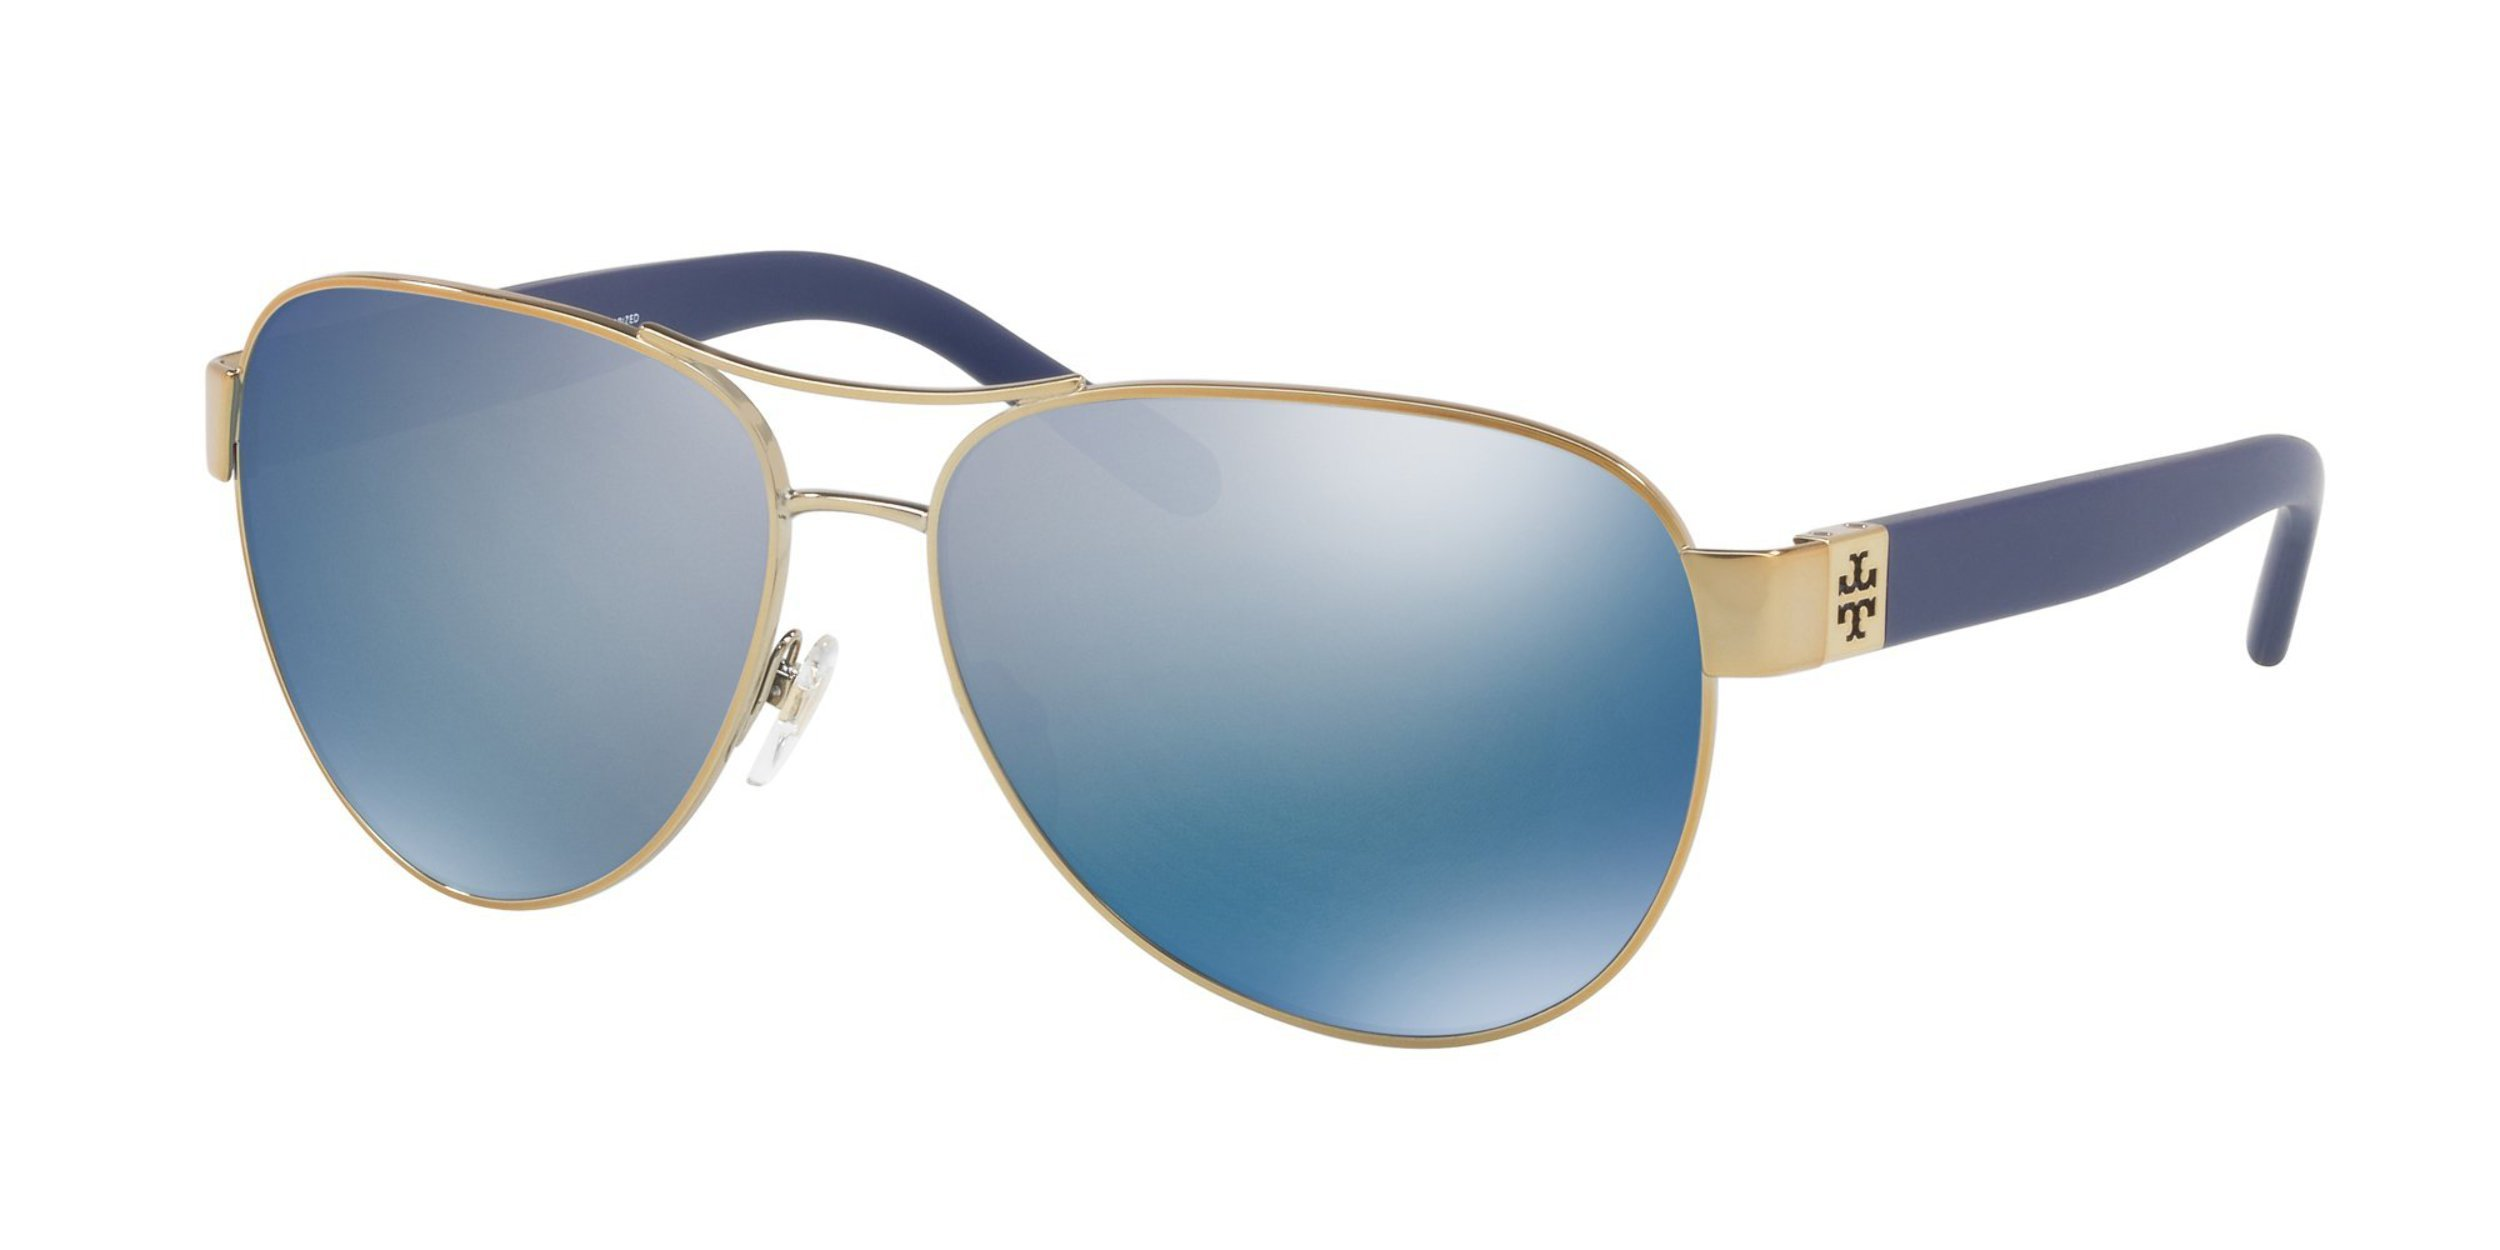 Tory Burch Women's 0TY6051 Gold/Blue Flash Polarized Mirror Sunglasses